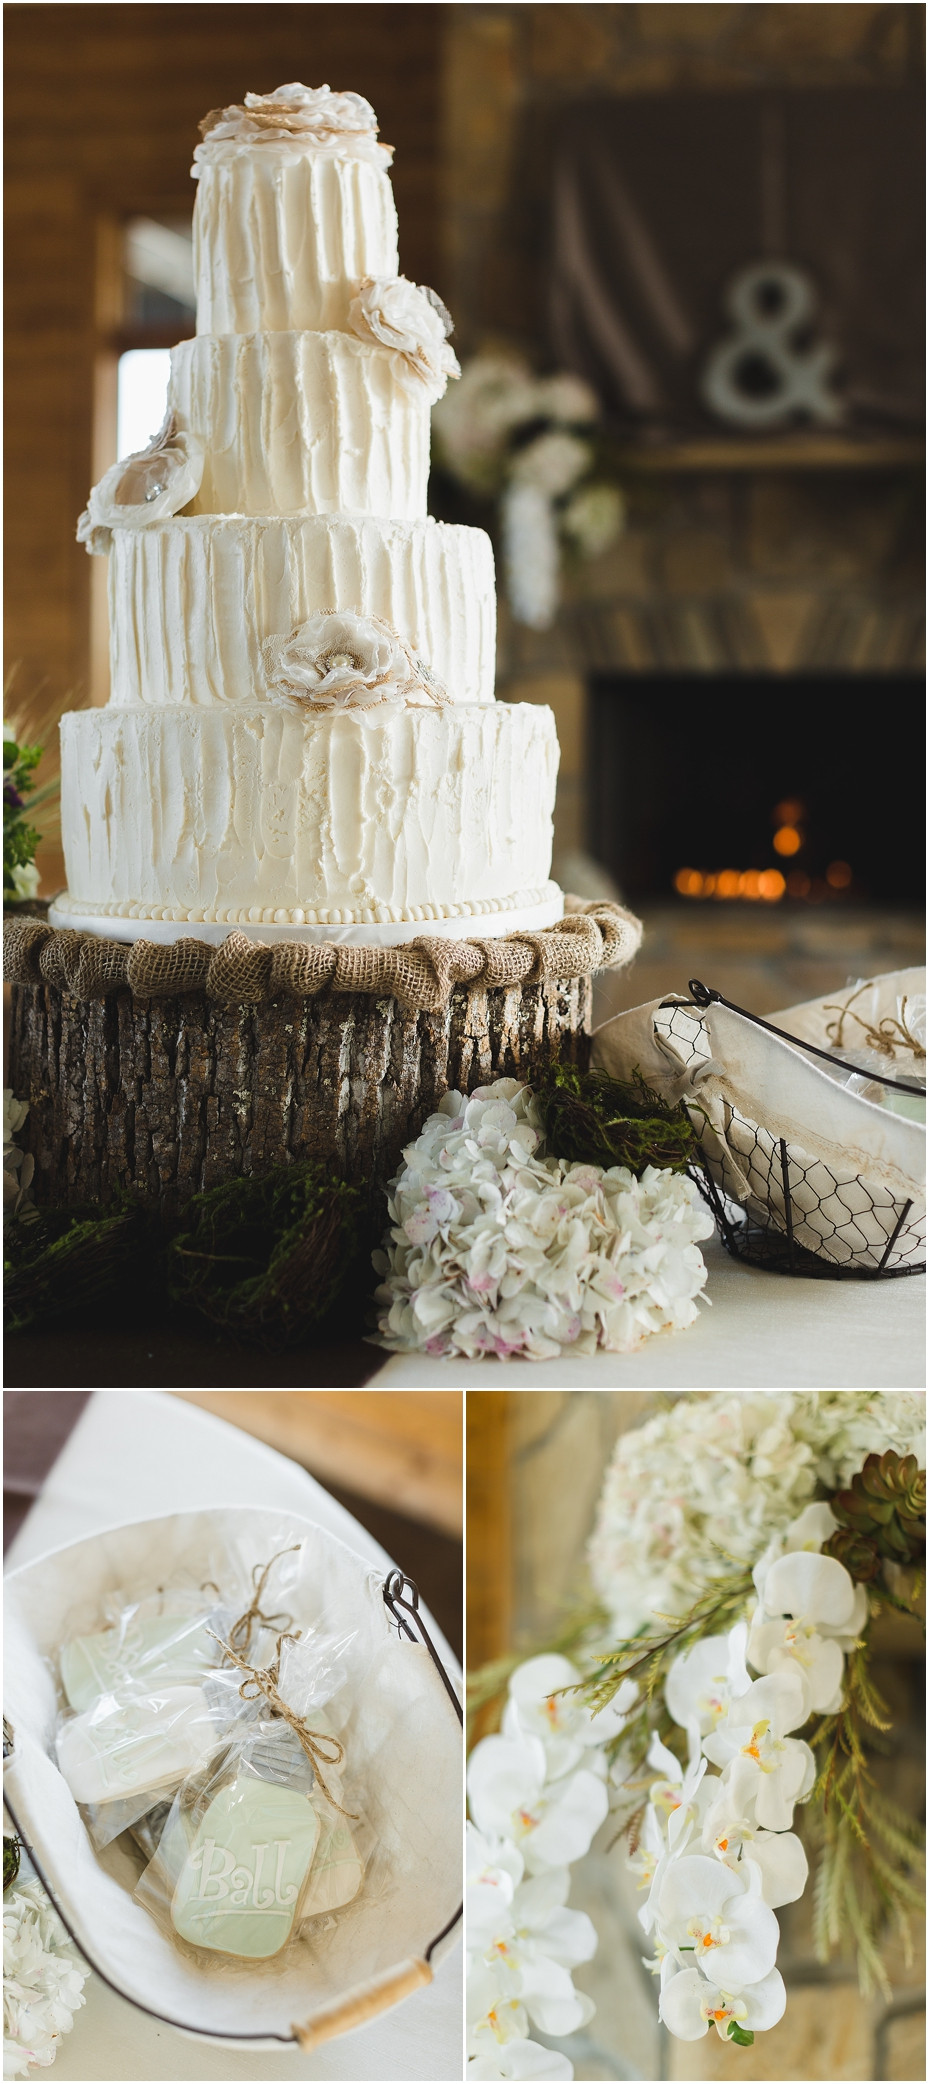 Wedding Cakes Knoxville  The Reserve at Bluebird Hill Wedding Venue Pics by Jo